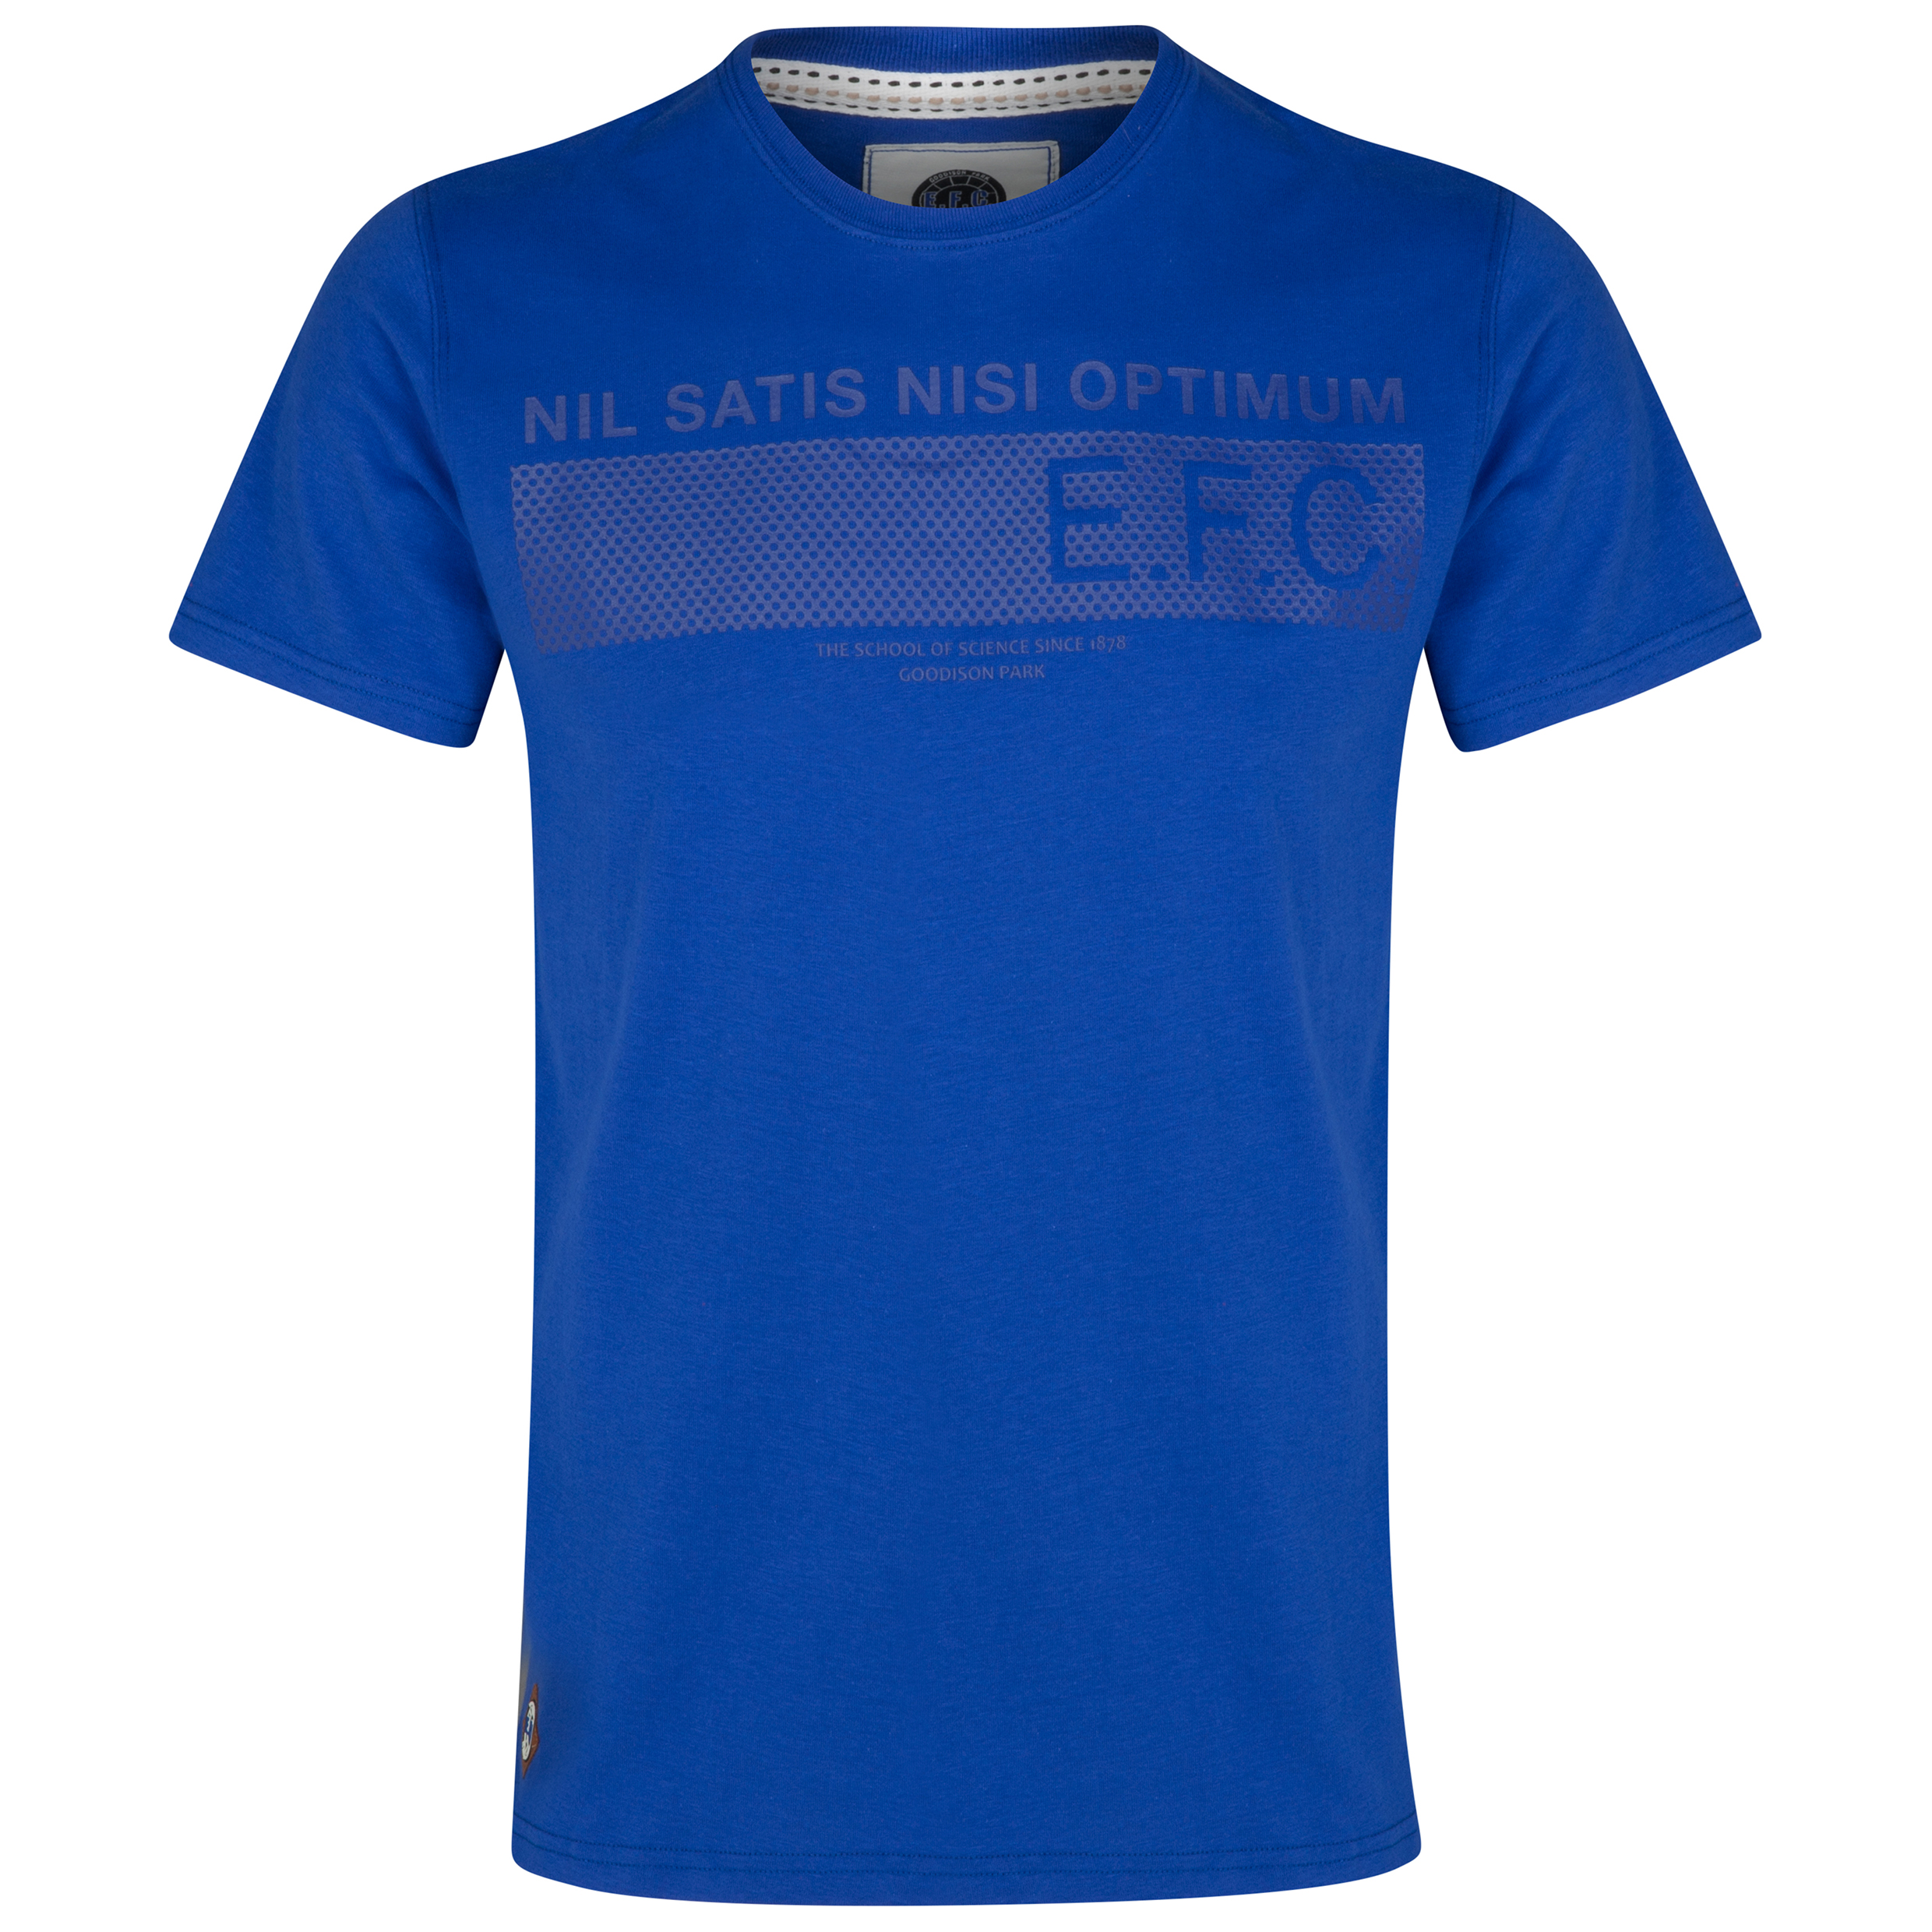 Everton T-Shirt - Everton Blue - Mens